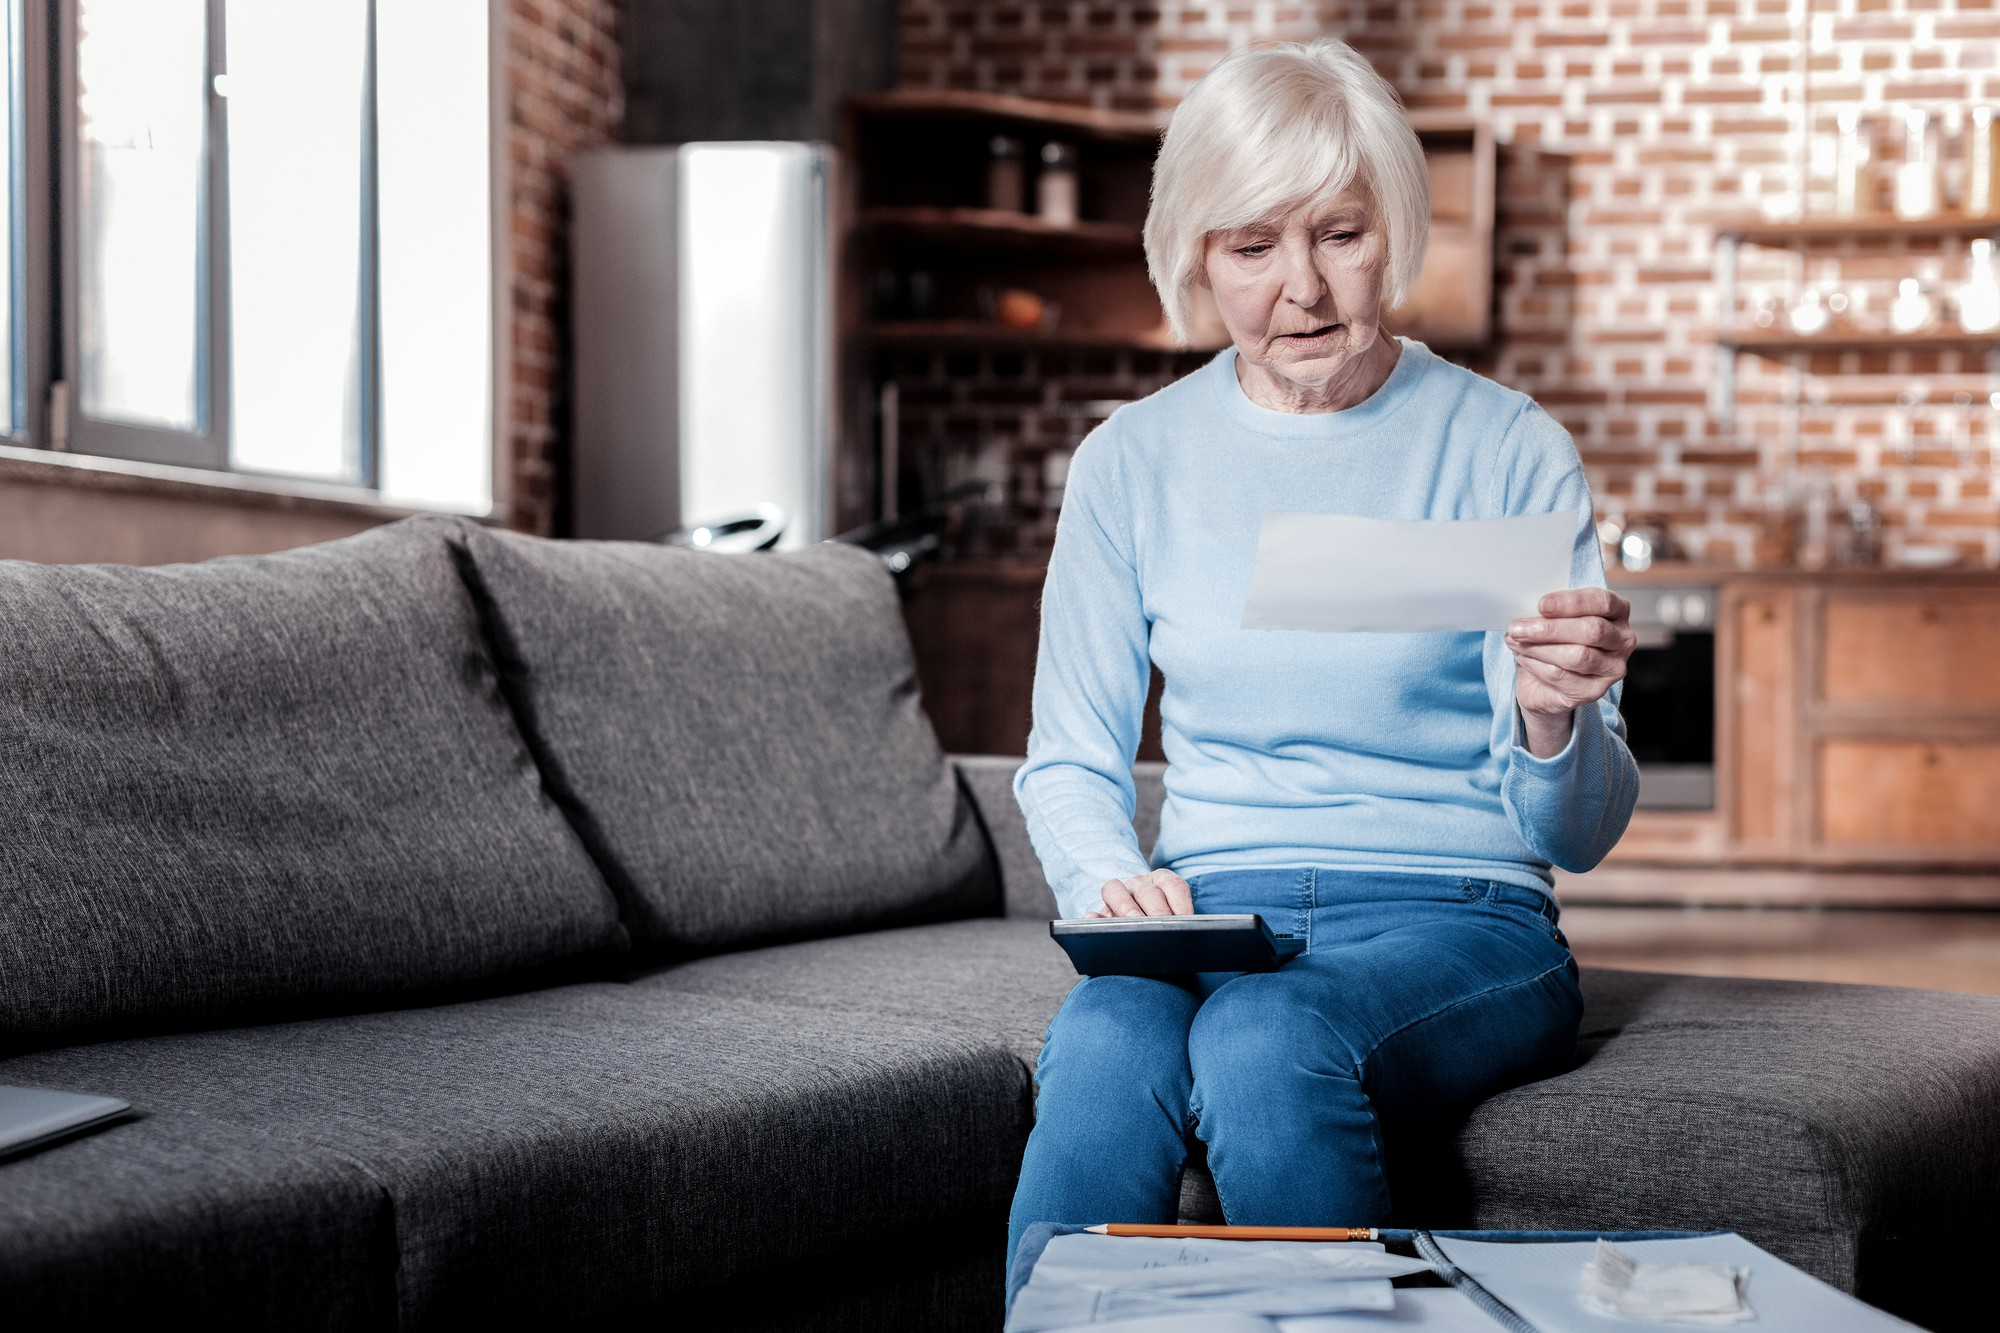 3 Potential Social Security Changes to Watch